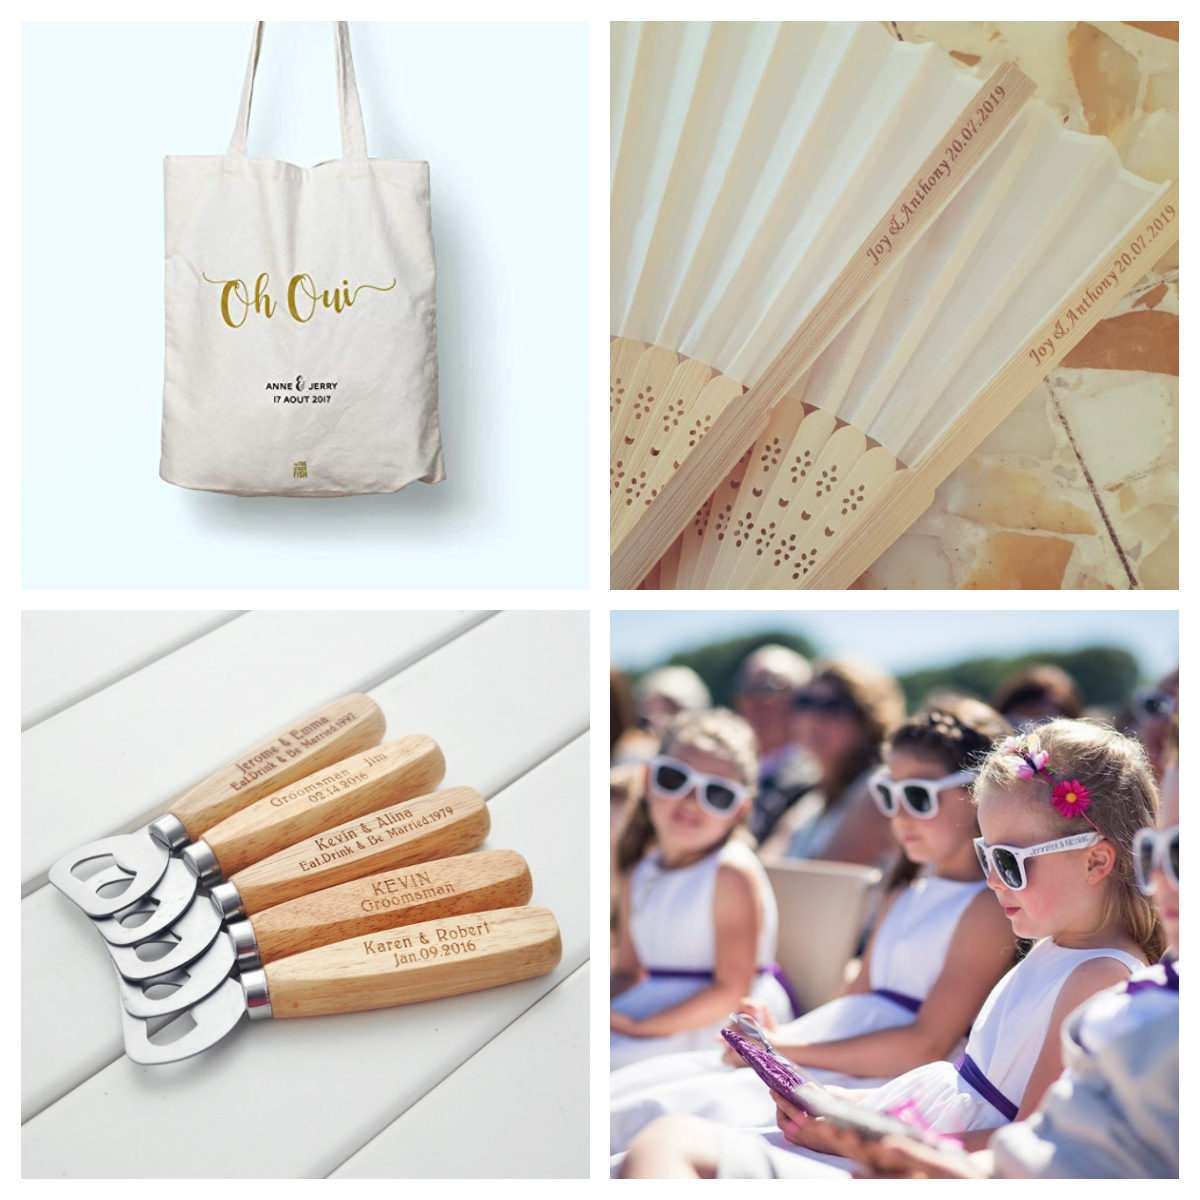 Unknown 2 1 - In Summer - Brighten your wedding with the soft rays of the sun!